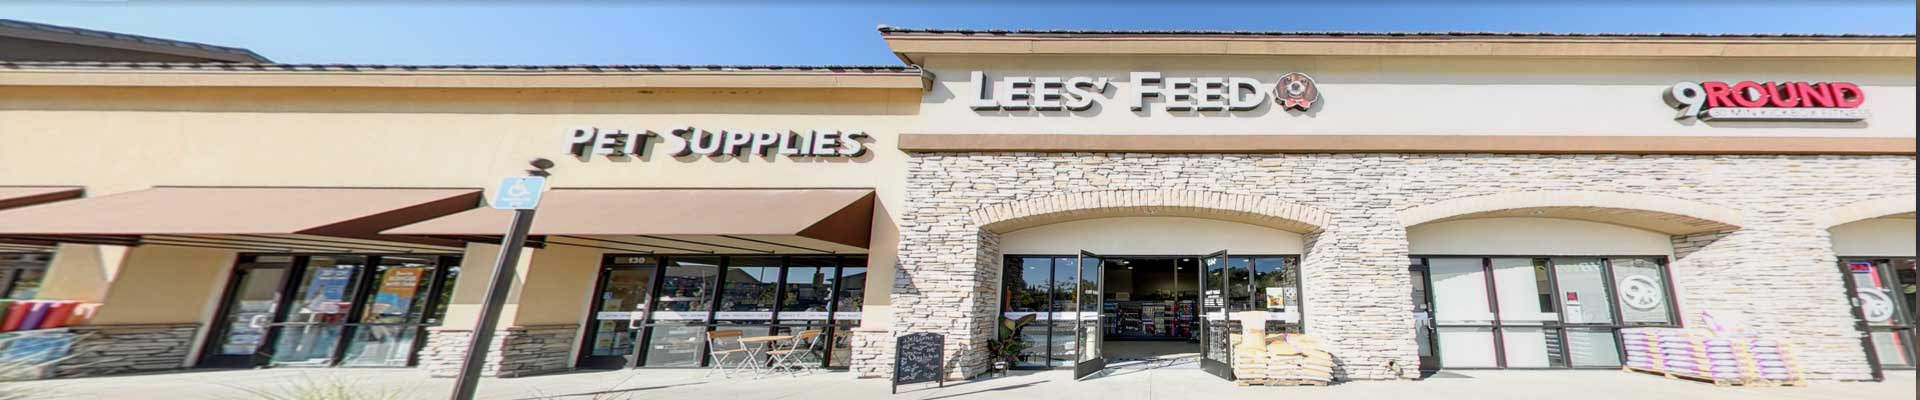 El Dorado Hills | Lees' Pet Supply